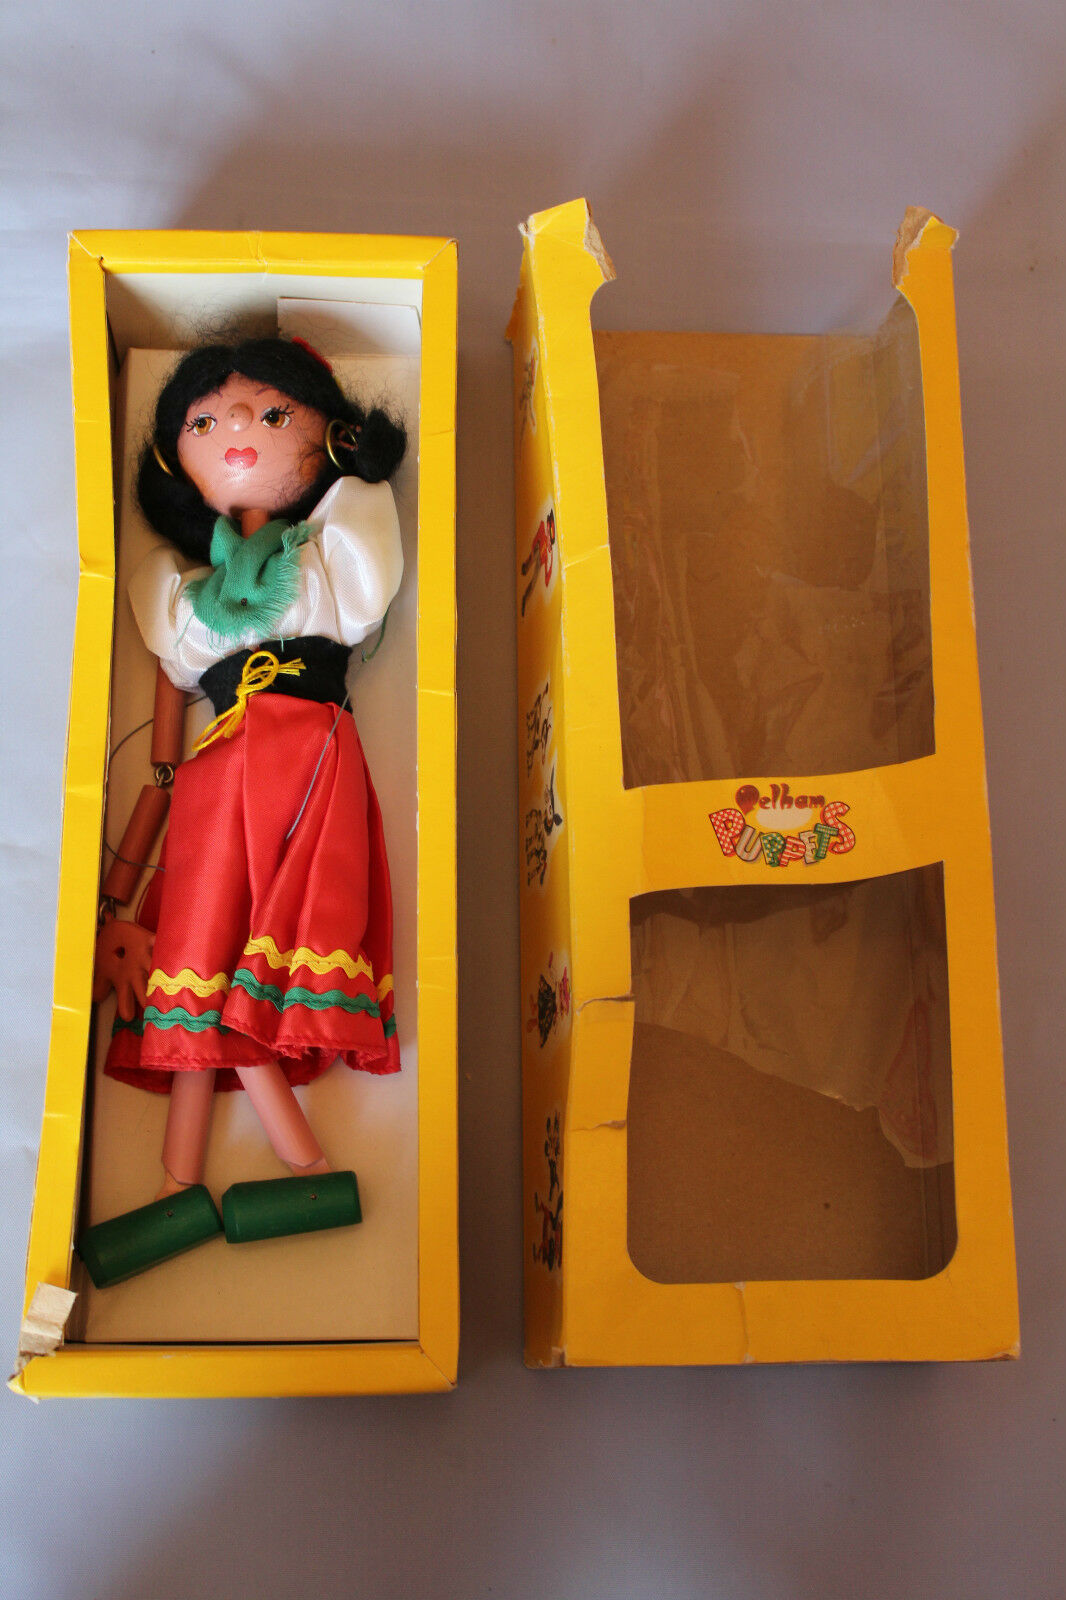 Pelham Puppet Gypsy in original box Ship Worldwide